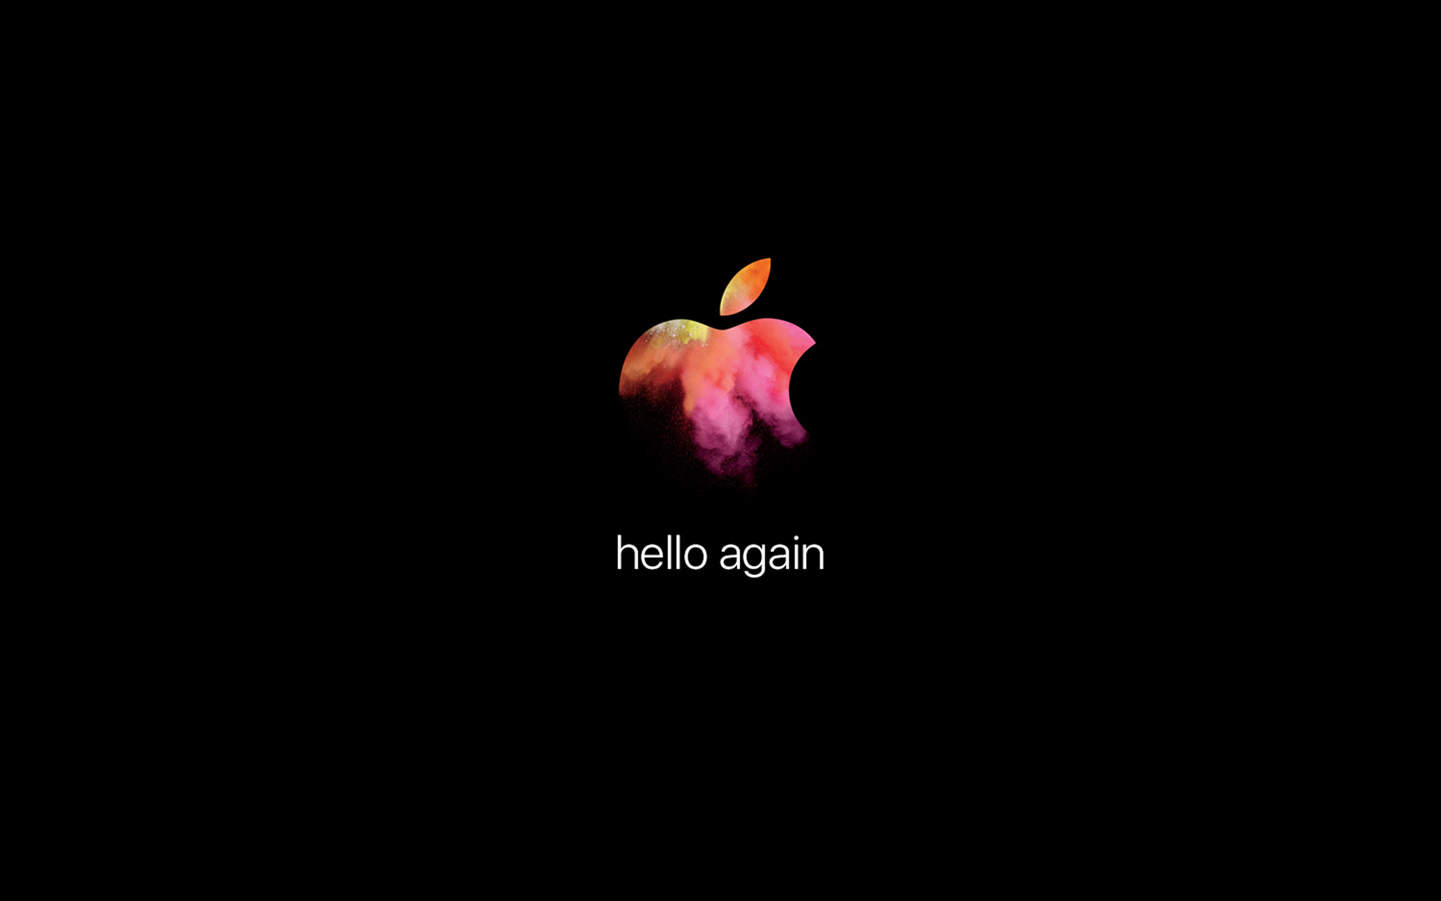 Get ready for Apple's Mac event with these wallpapers ...